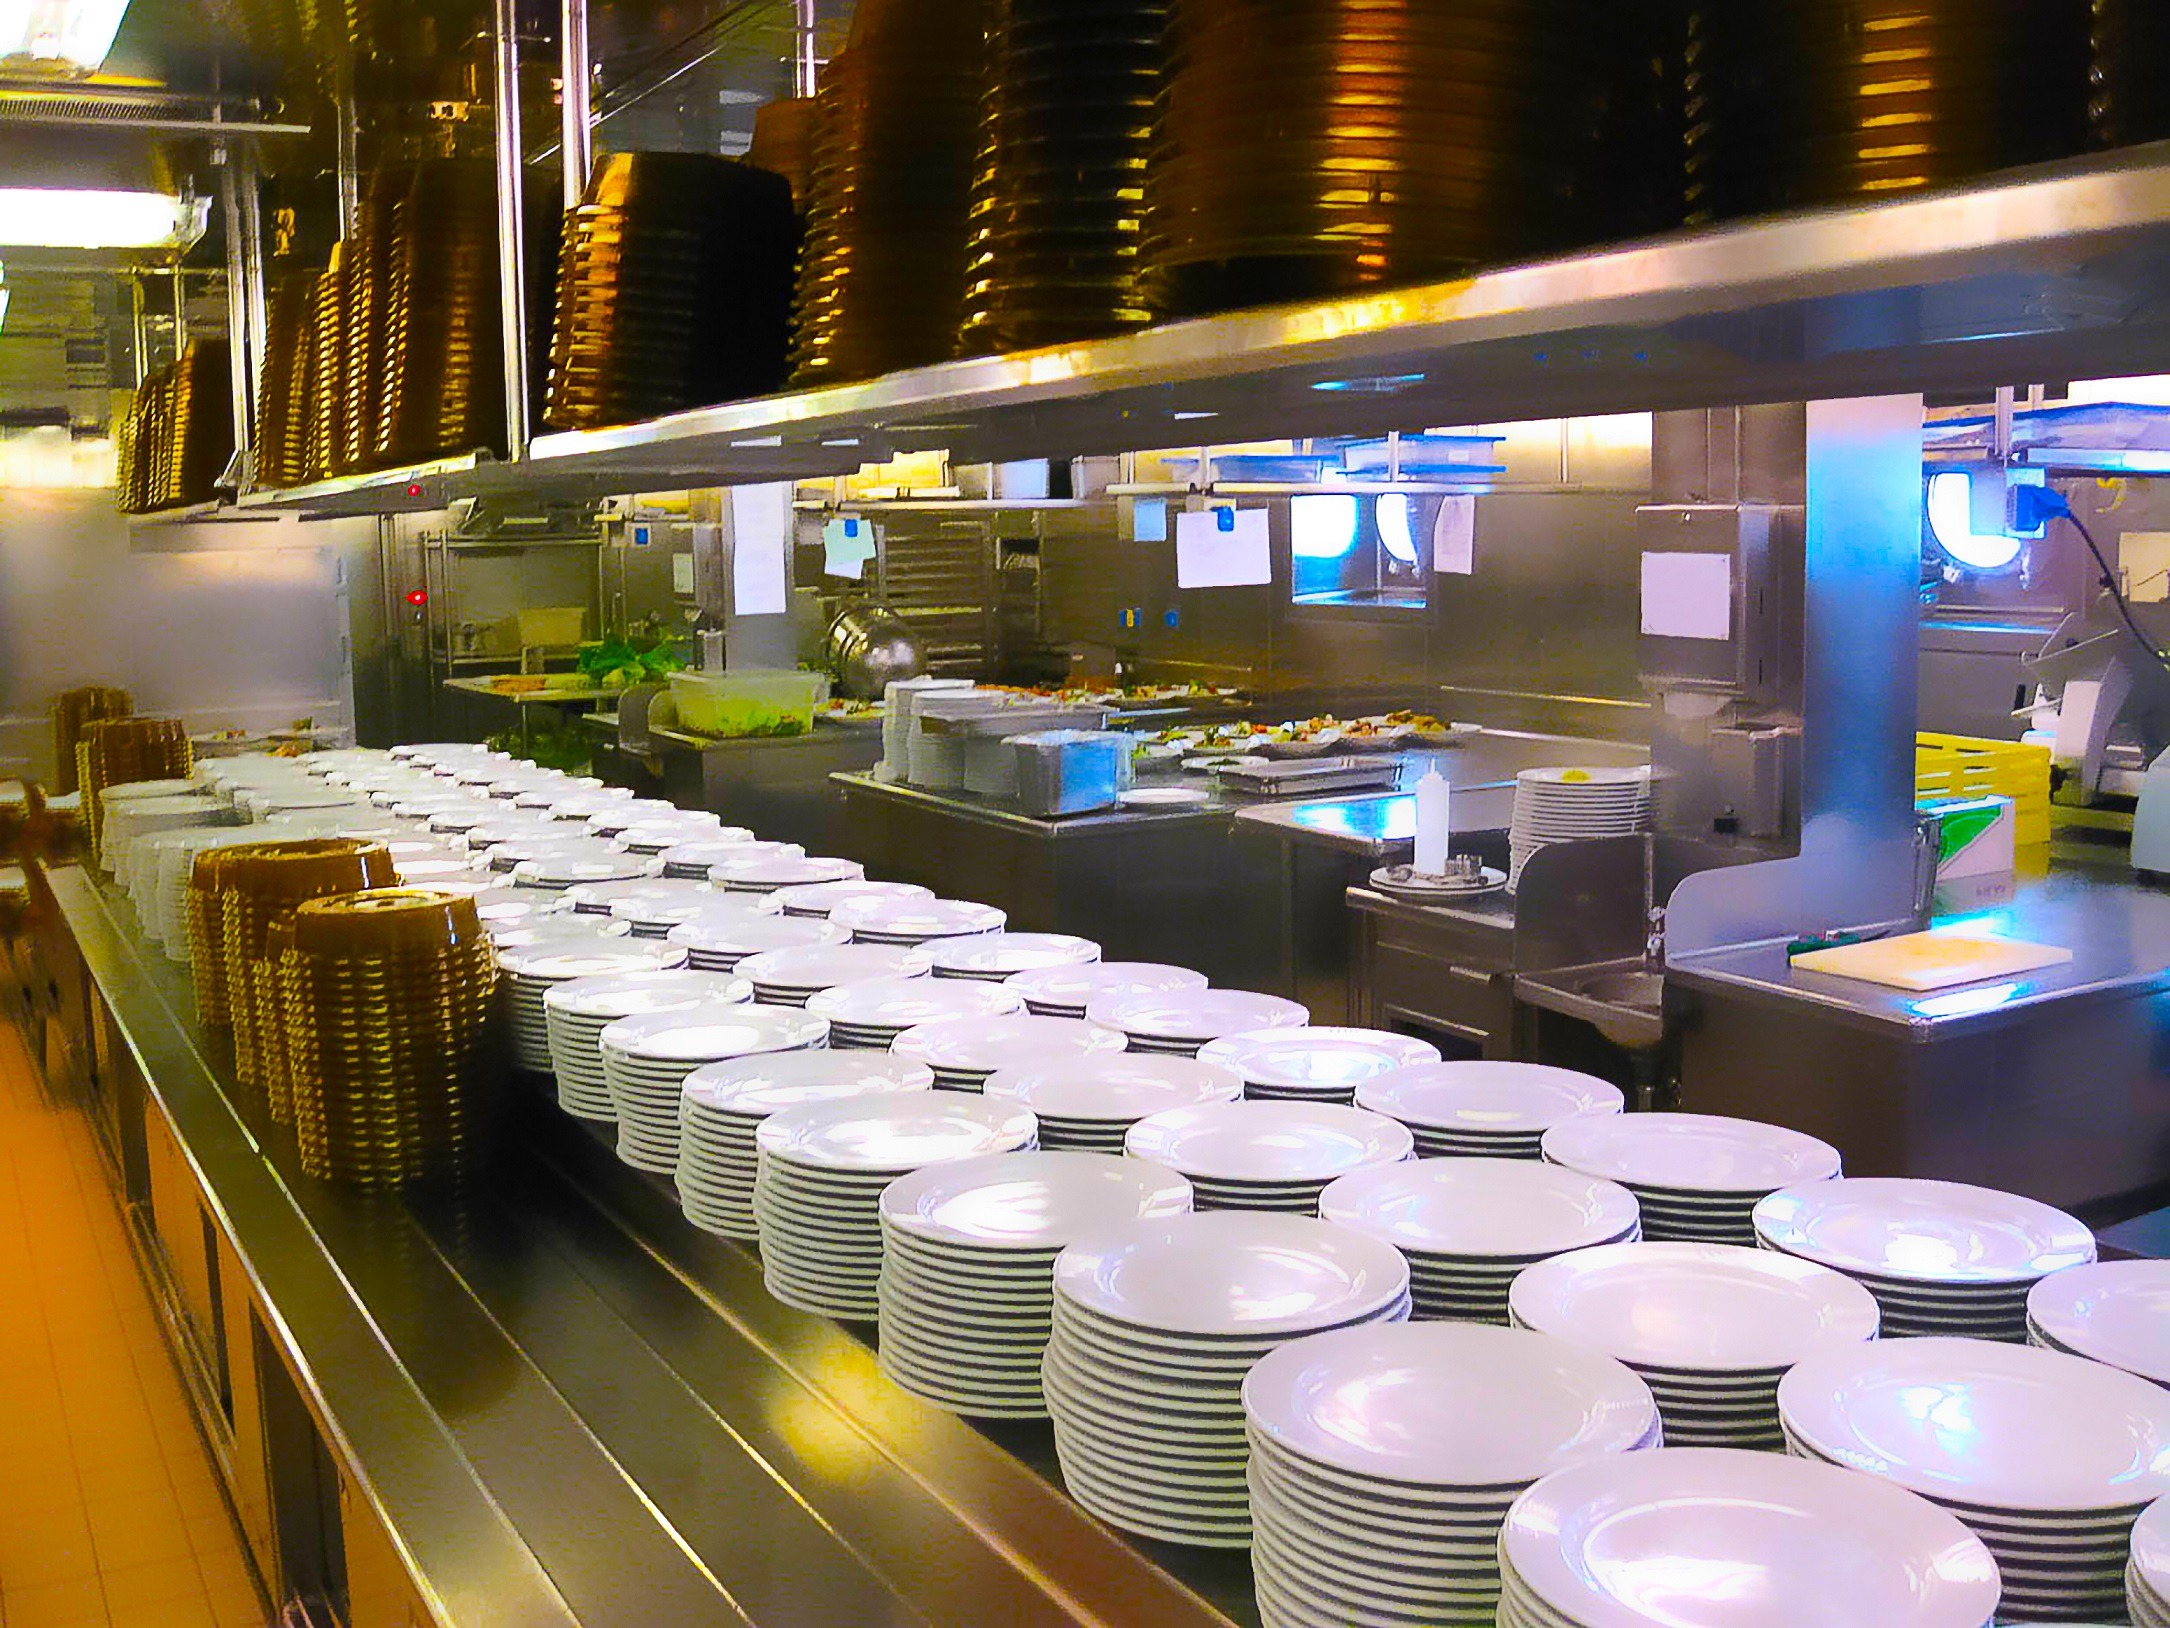 Kitchen of a cruise ship